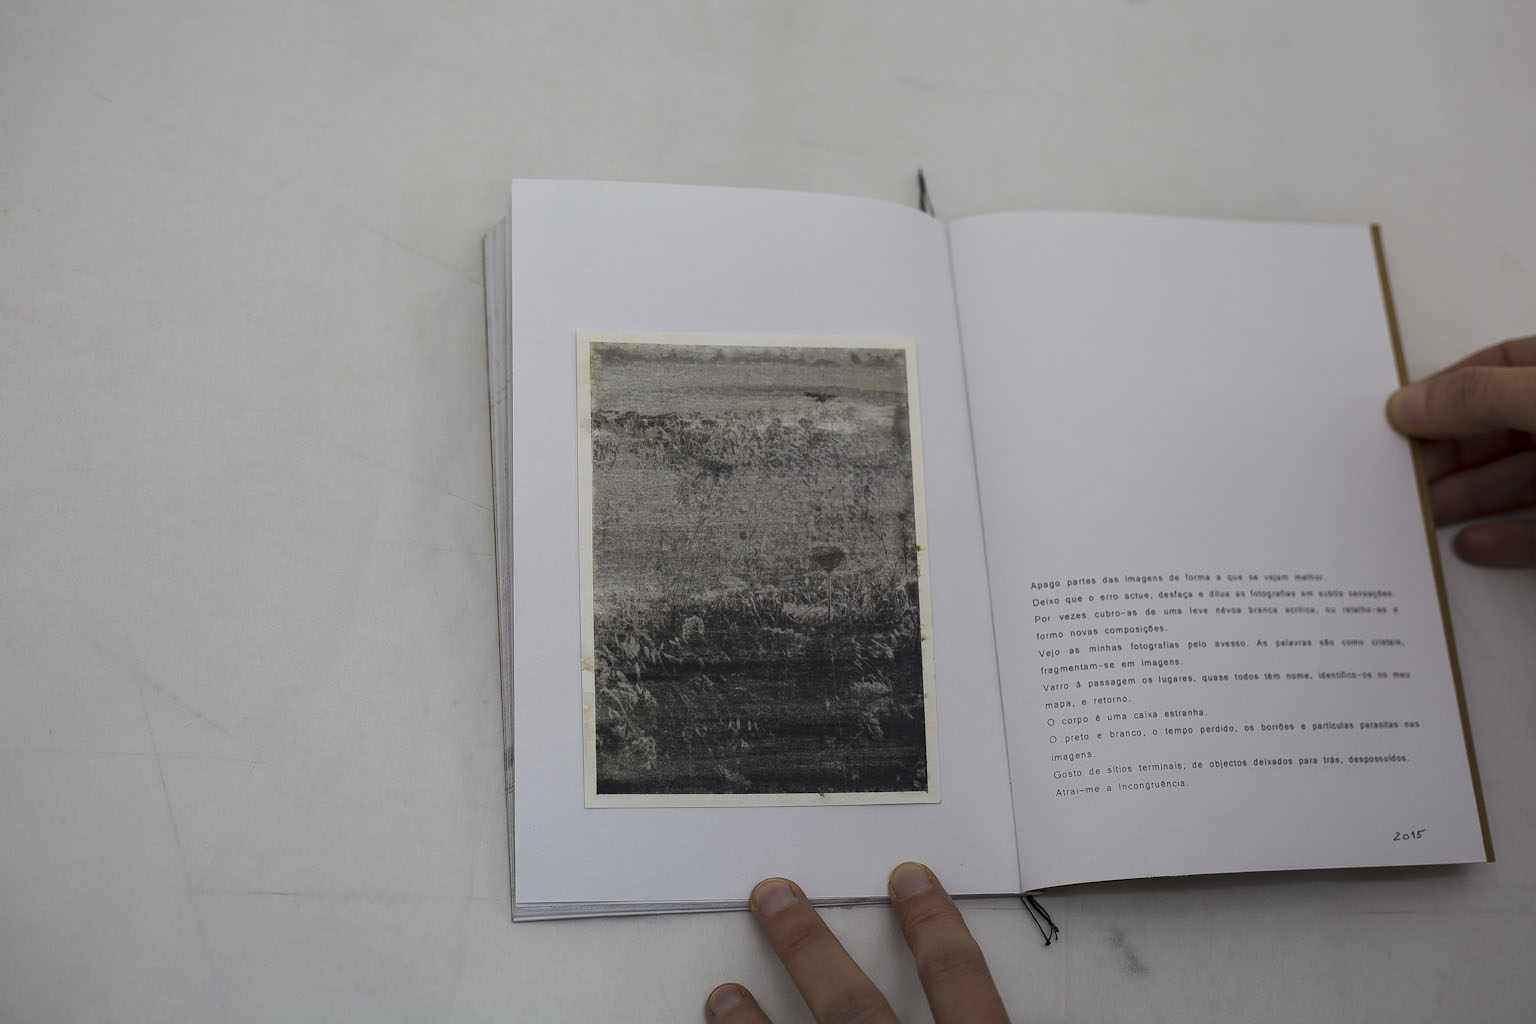 paula-roush-pageturner-workshop-lisbon-photobook-fair-50